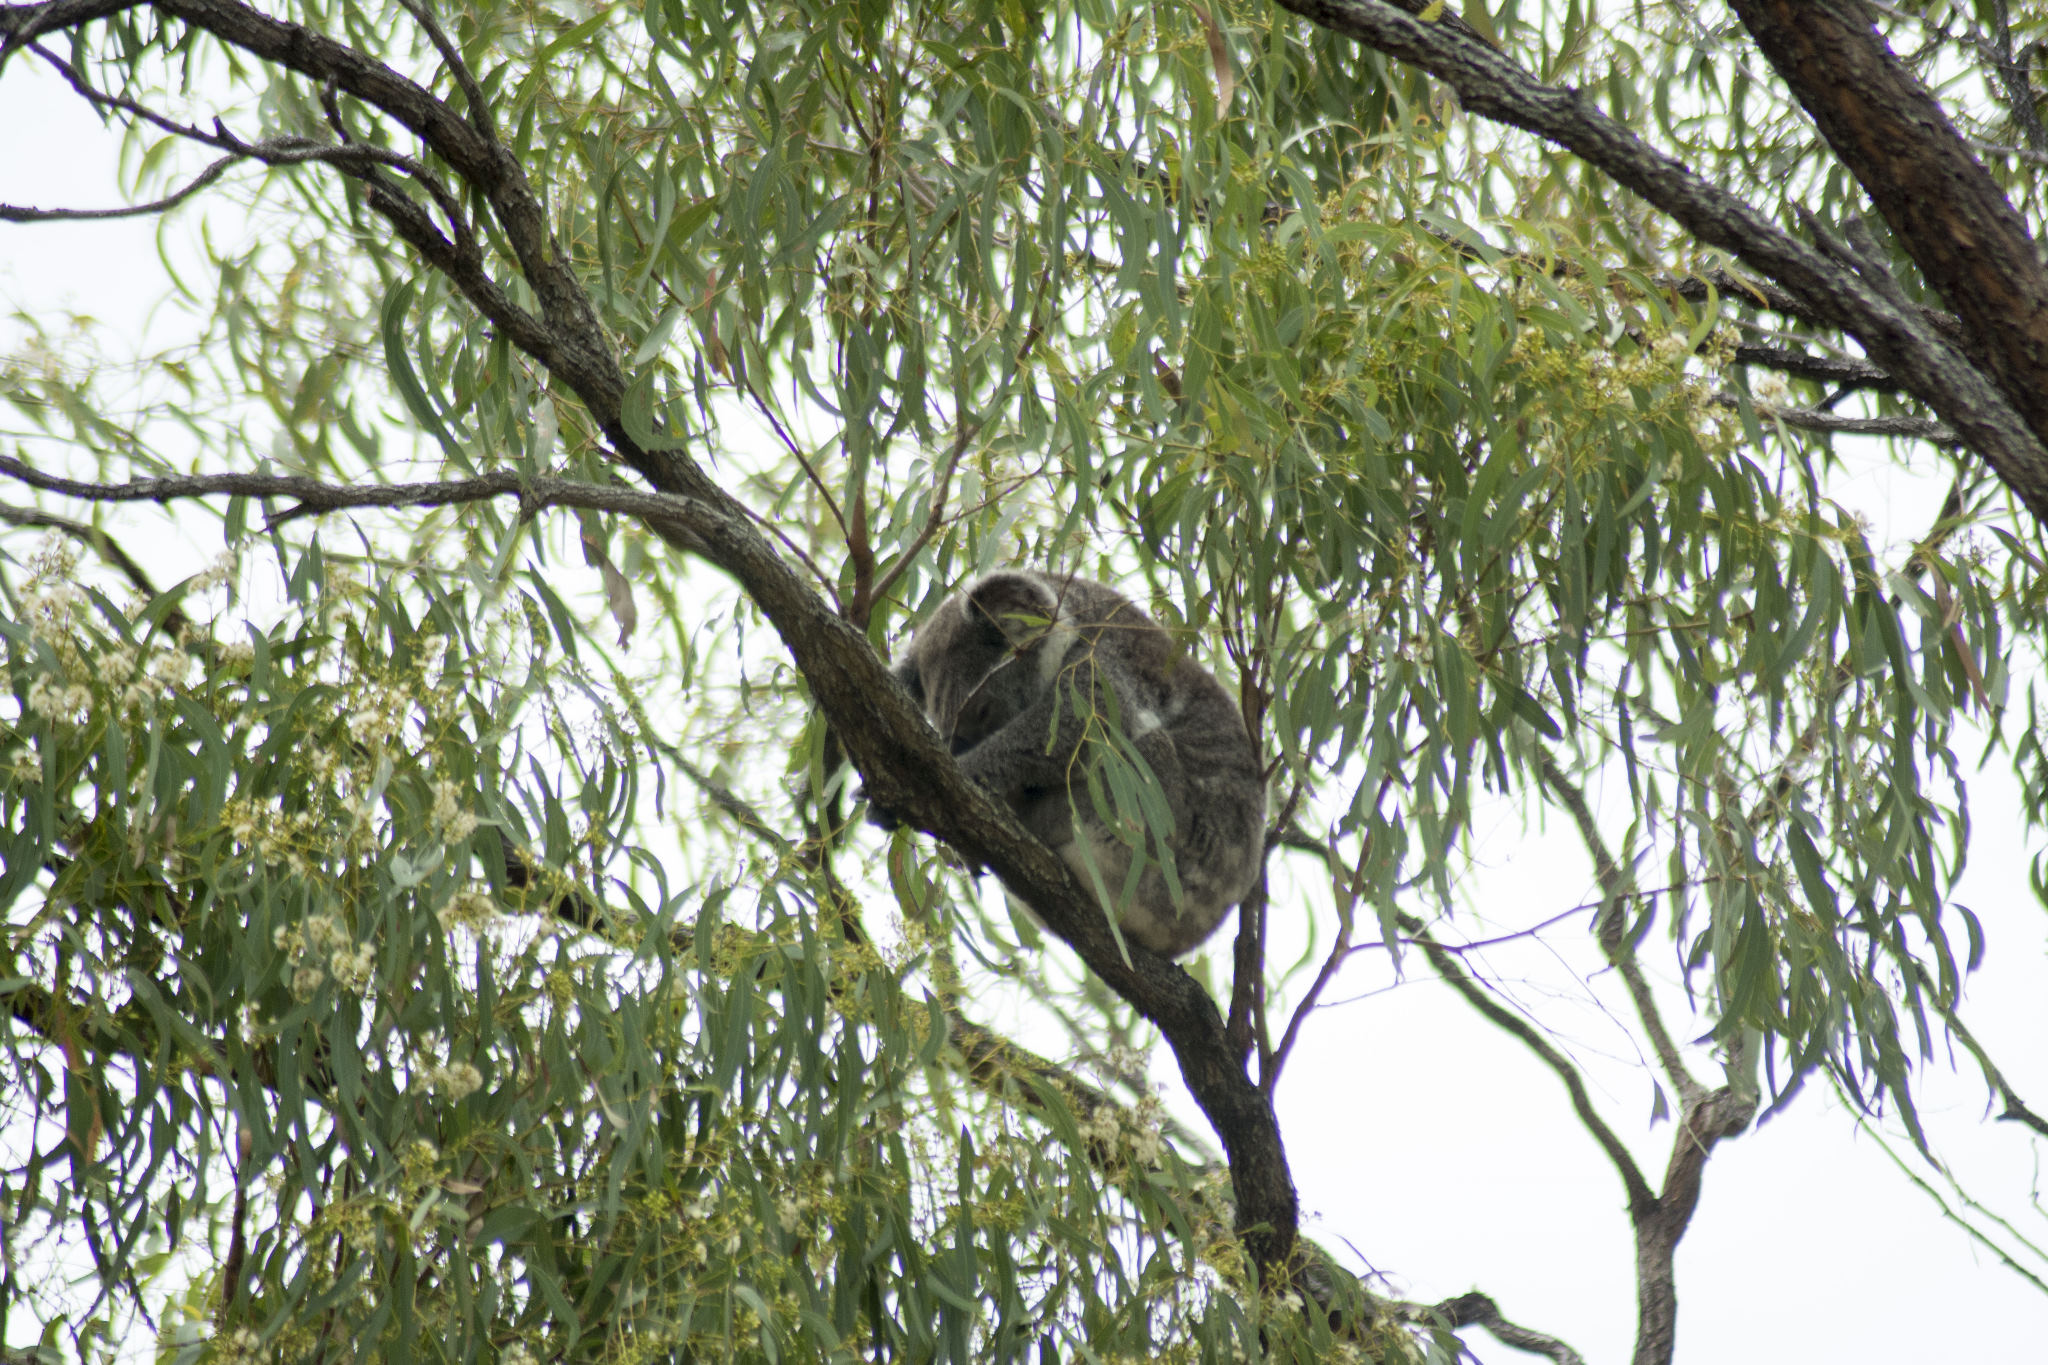 Koala sleeping in the ironbark off the deck